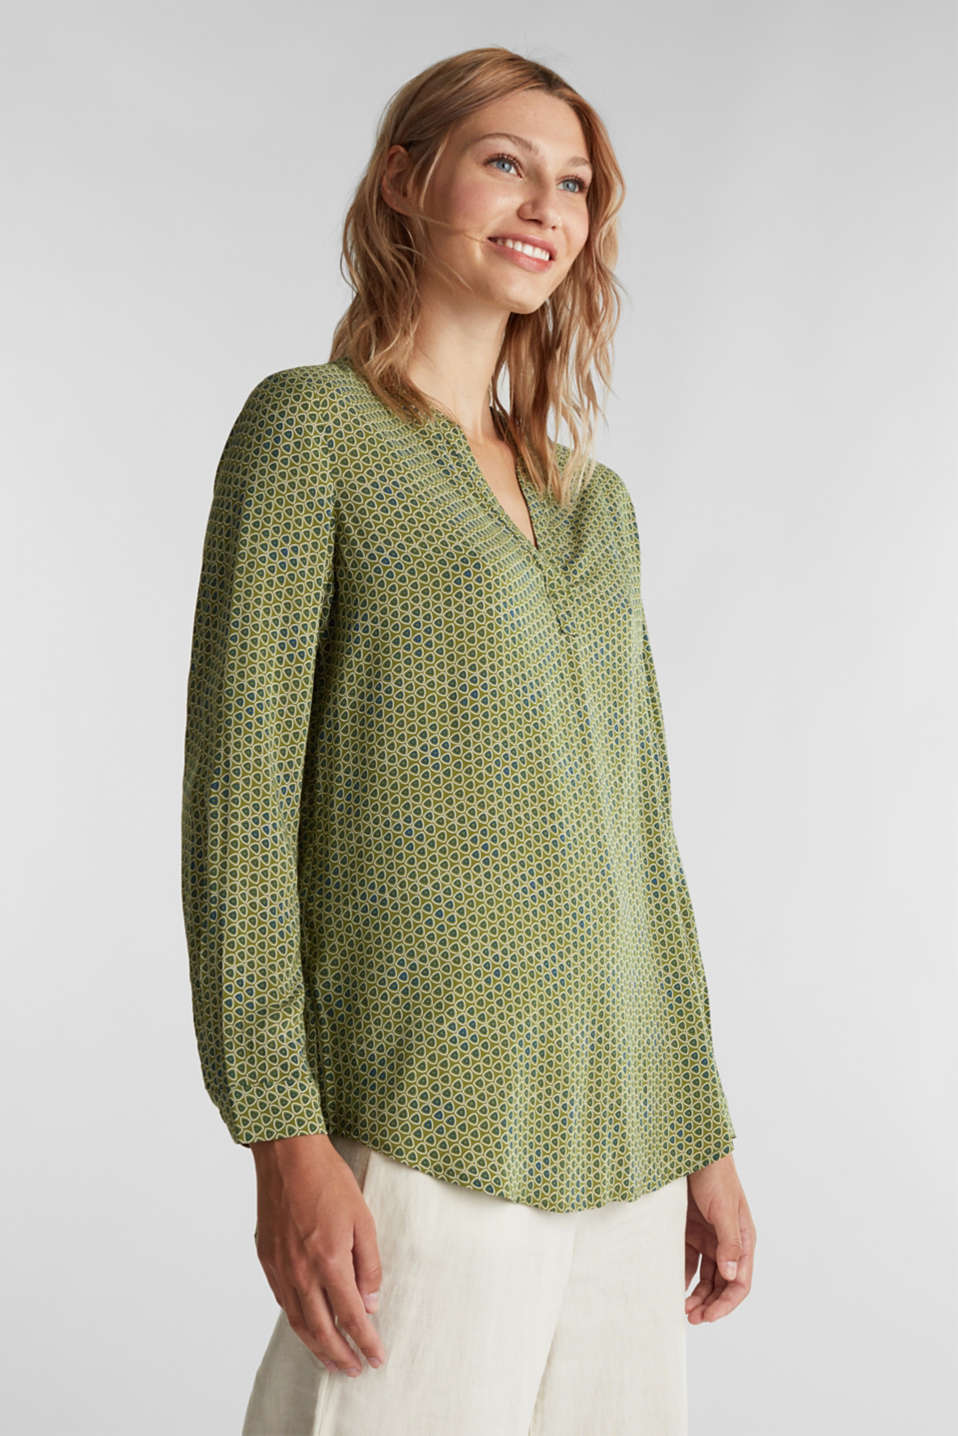 Esprit - Henley blouse made of LENZING™ ECOVERO™